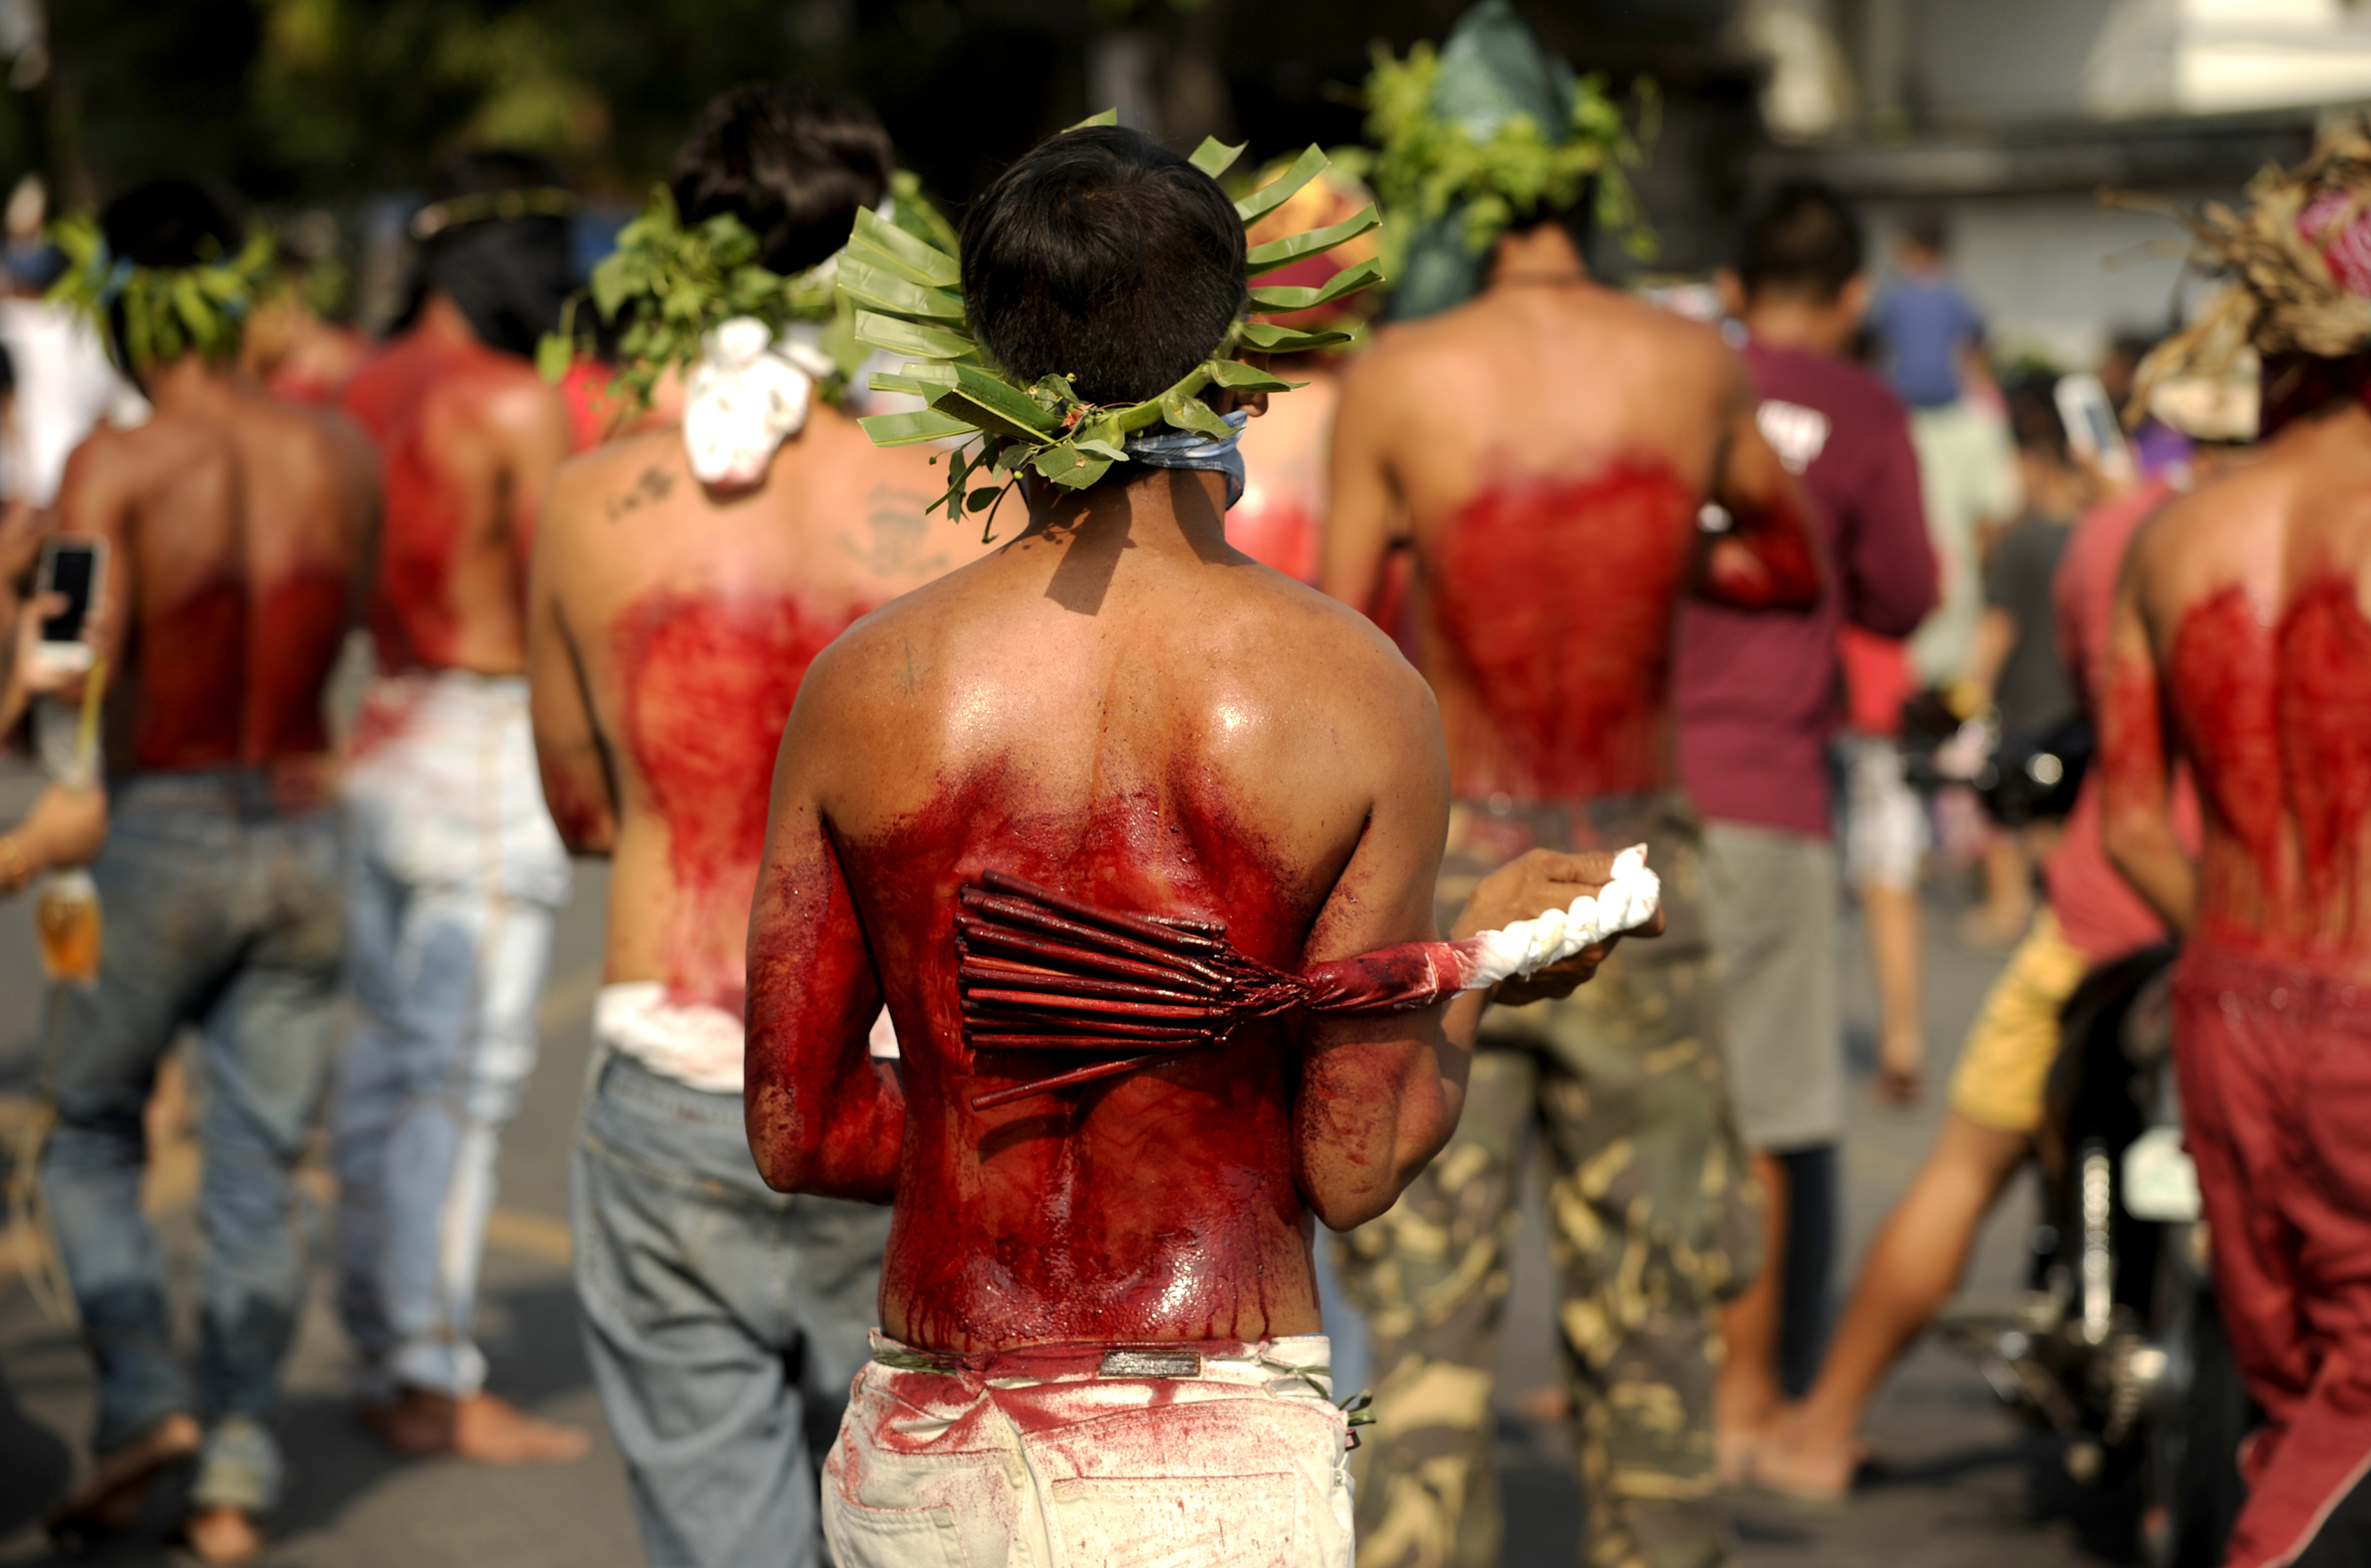 Participants whip their bloodied backs with bamboo as part of their penitence during the re-enactment of the crucifixion of Jesus Christ for Good Friday celebrations ahead of Easter in the village of San Juan, Pampanga, north of Manila on March 25, 2016. Christian devotees were nailed to crosses in the Philippines on March 25 as Asia's Catholic heartland marked Easter with an extreme display of faith. / AFP / NOEL CELIS